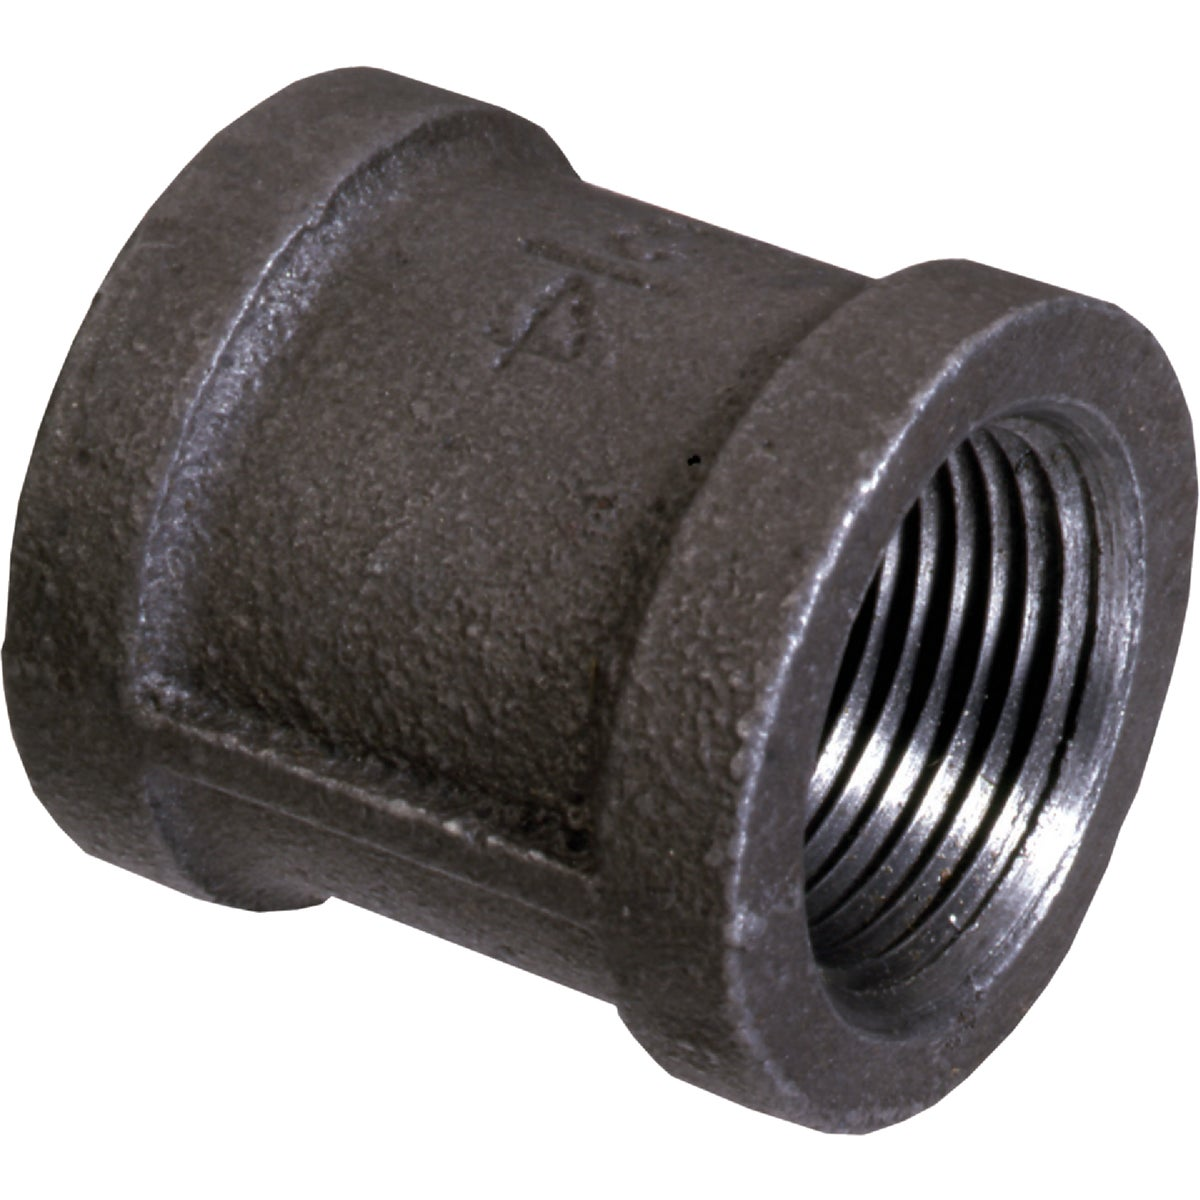 "3/8"" BLACK COUPLING - 521-202BG by Mueller B K"